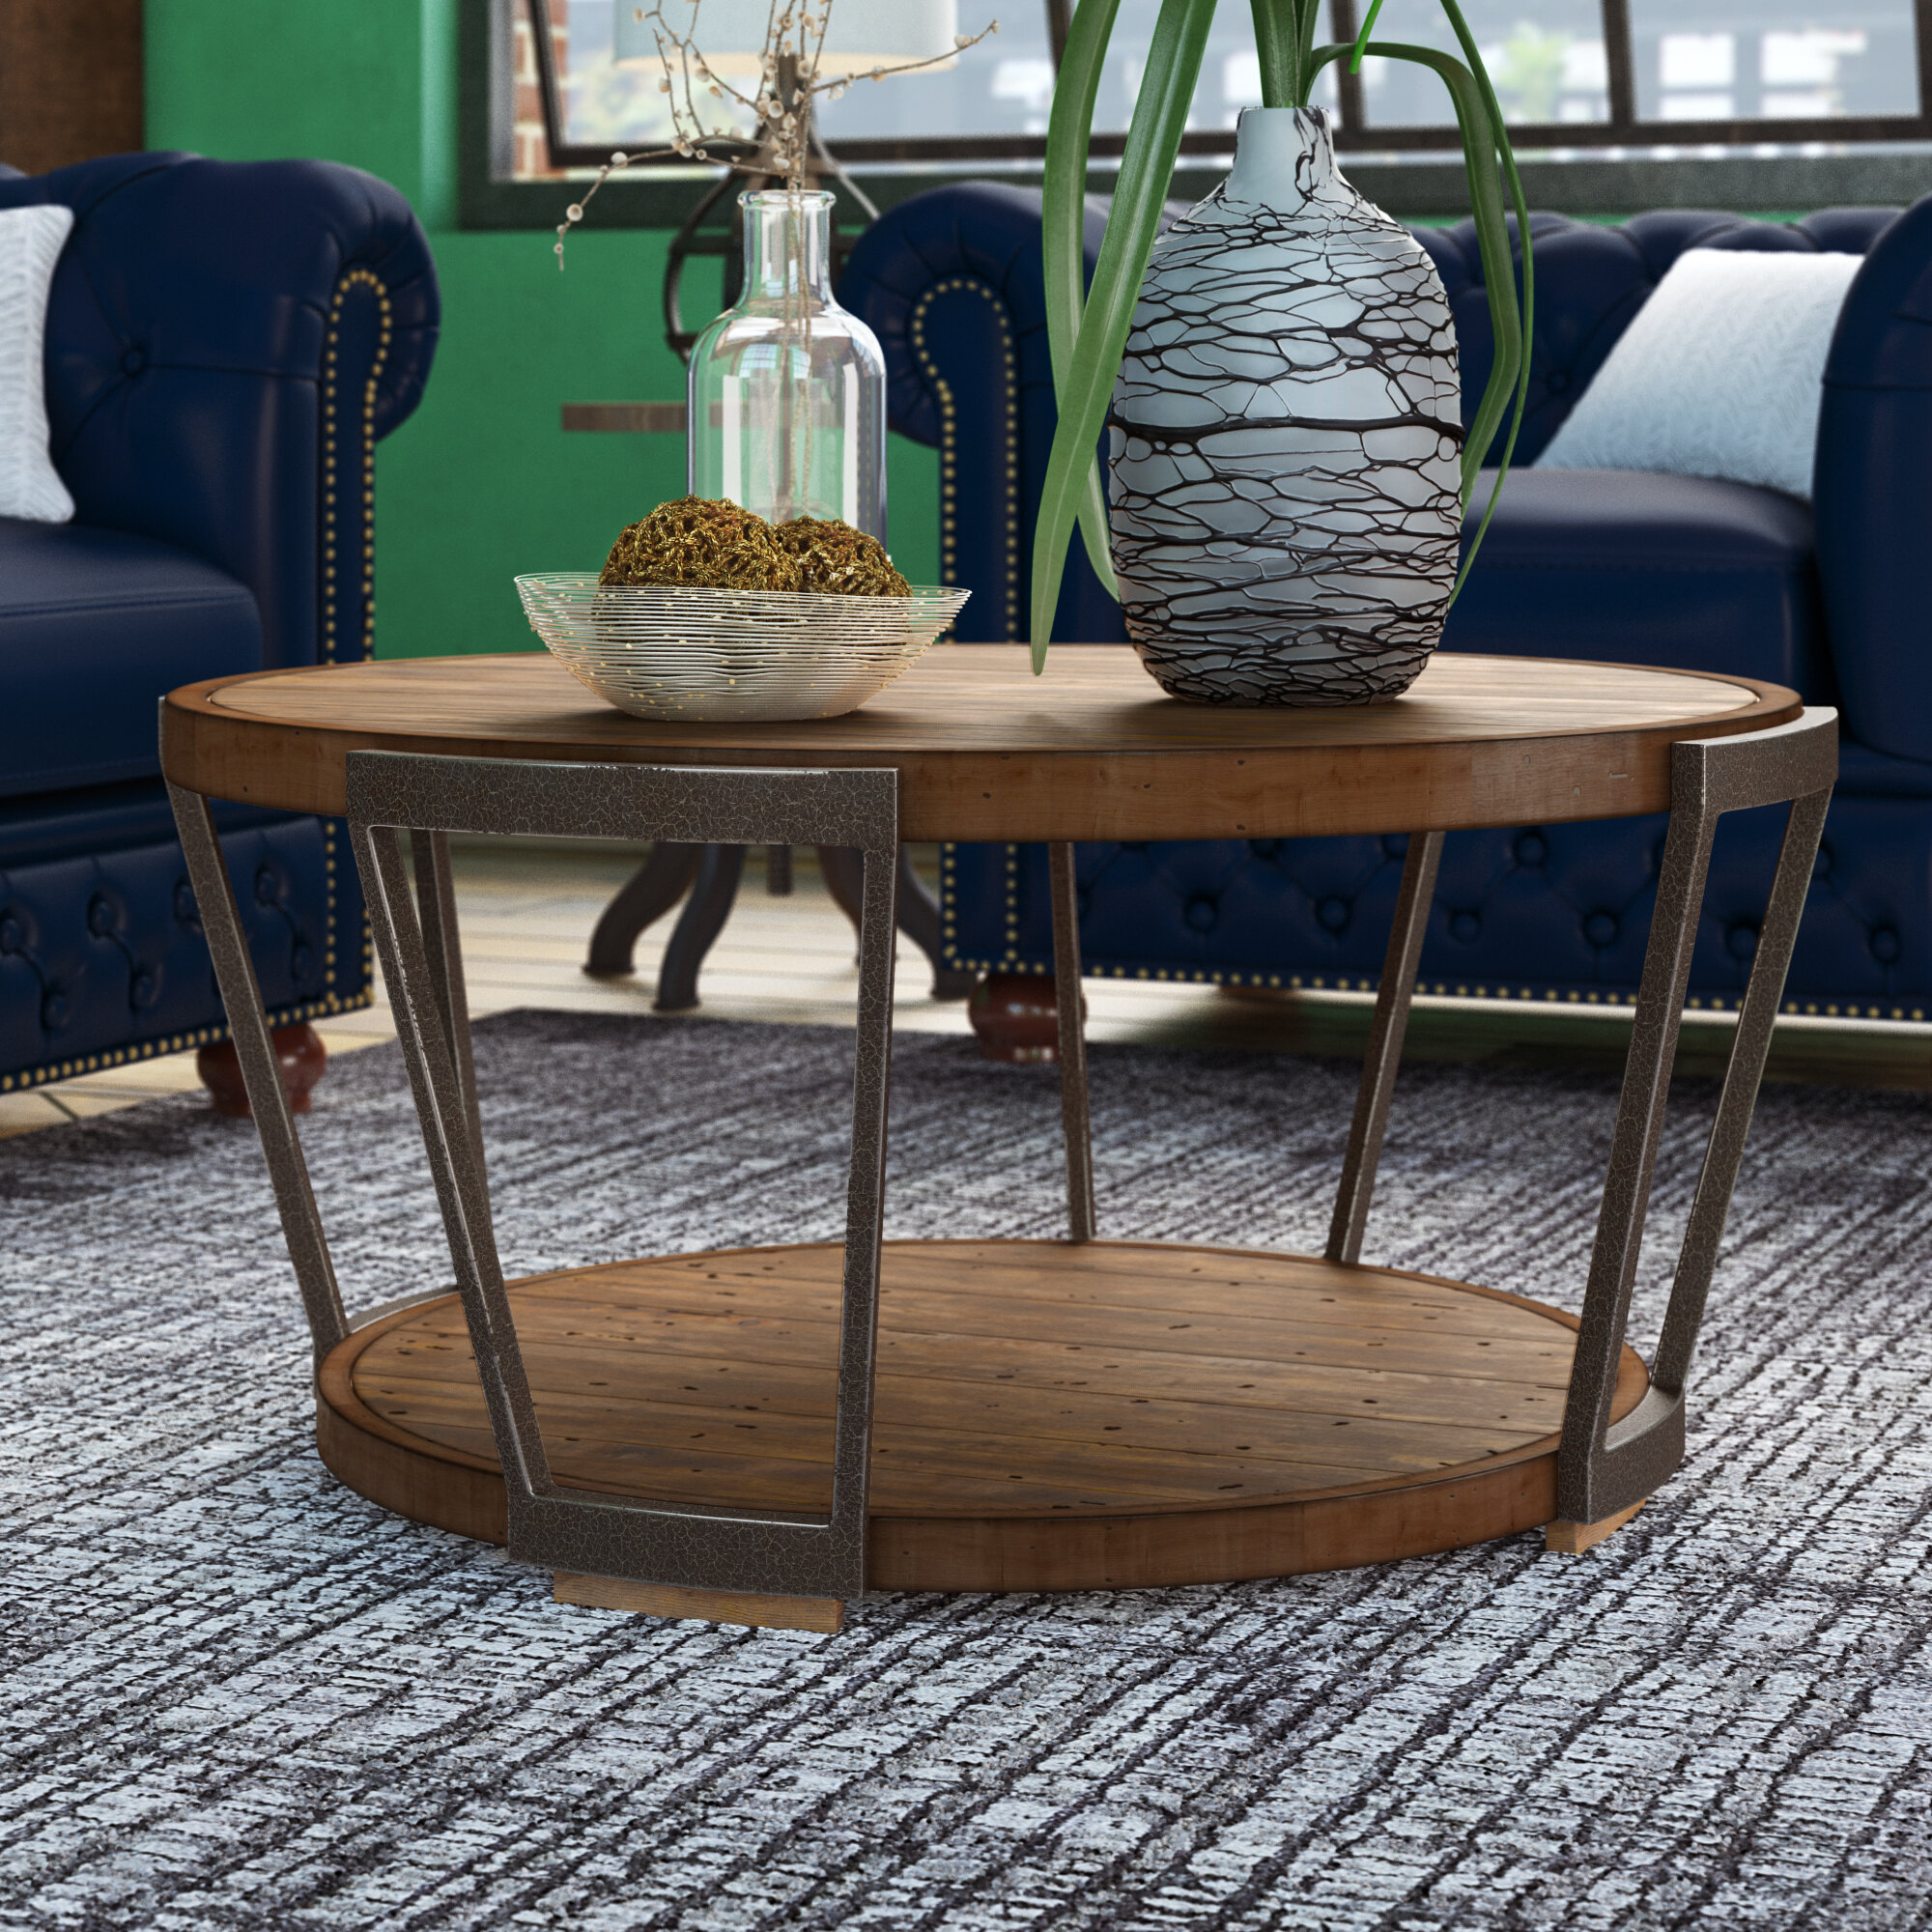 Round Rustic Coffee Table Sets You Ll Love In 2021 Wayfair